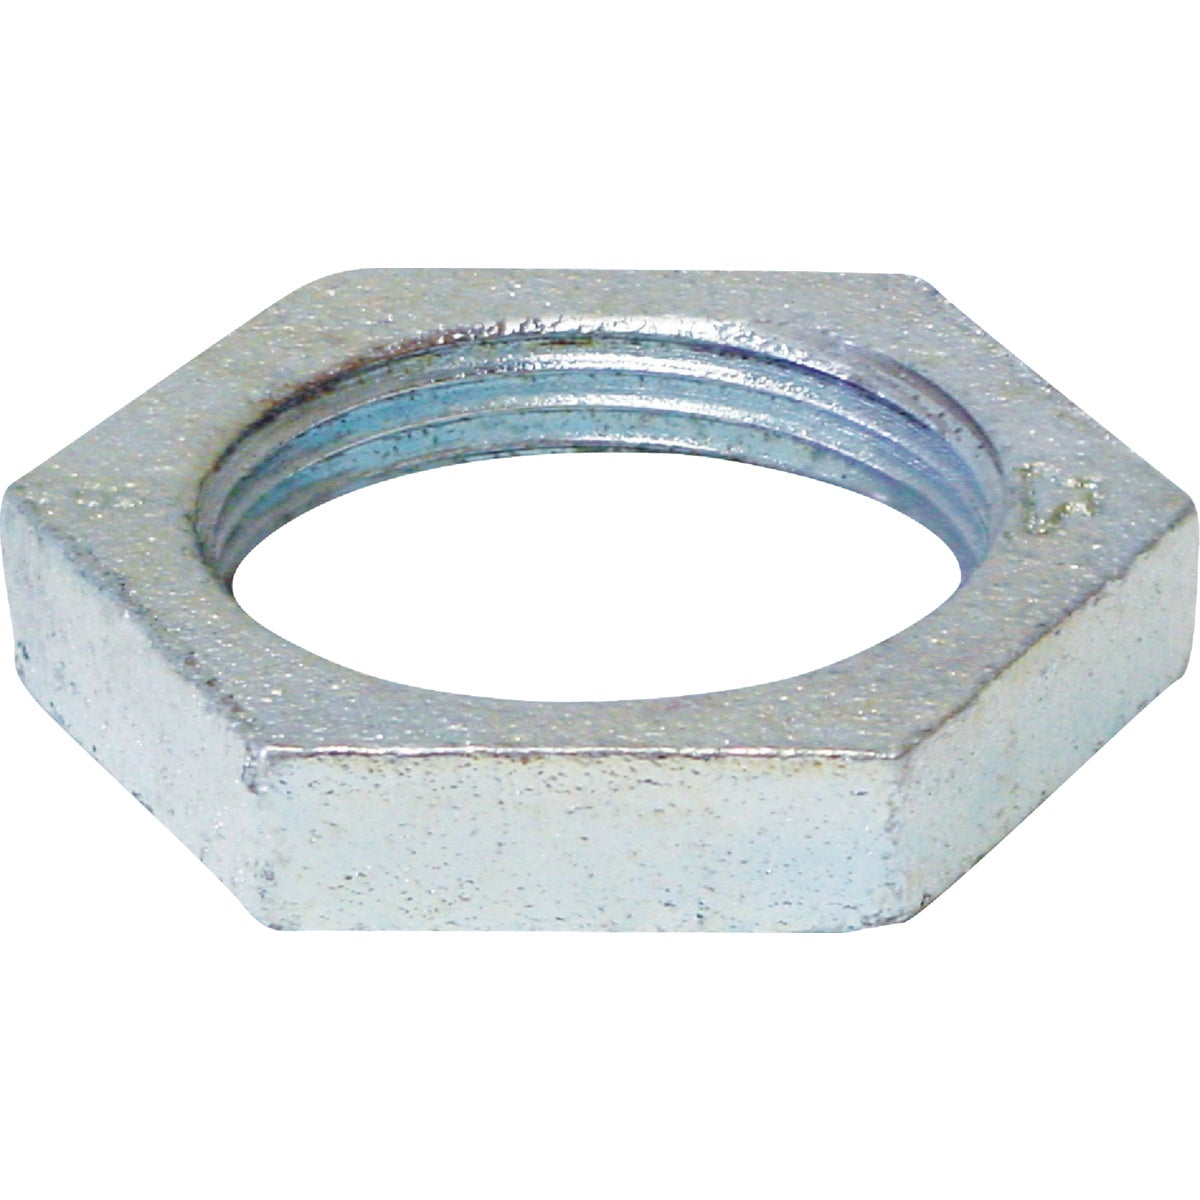 "3/4"" GALV LOCKNUT - 8700162558 by Anvil International"